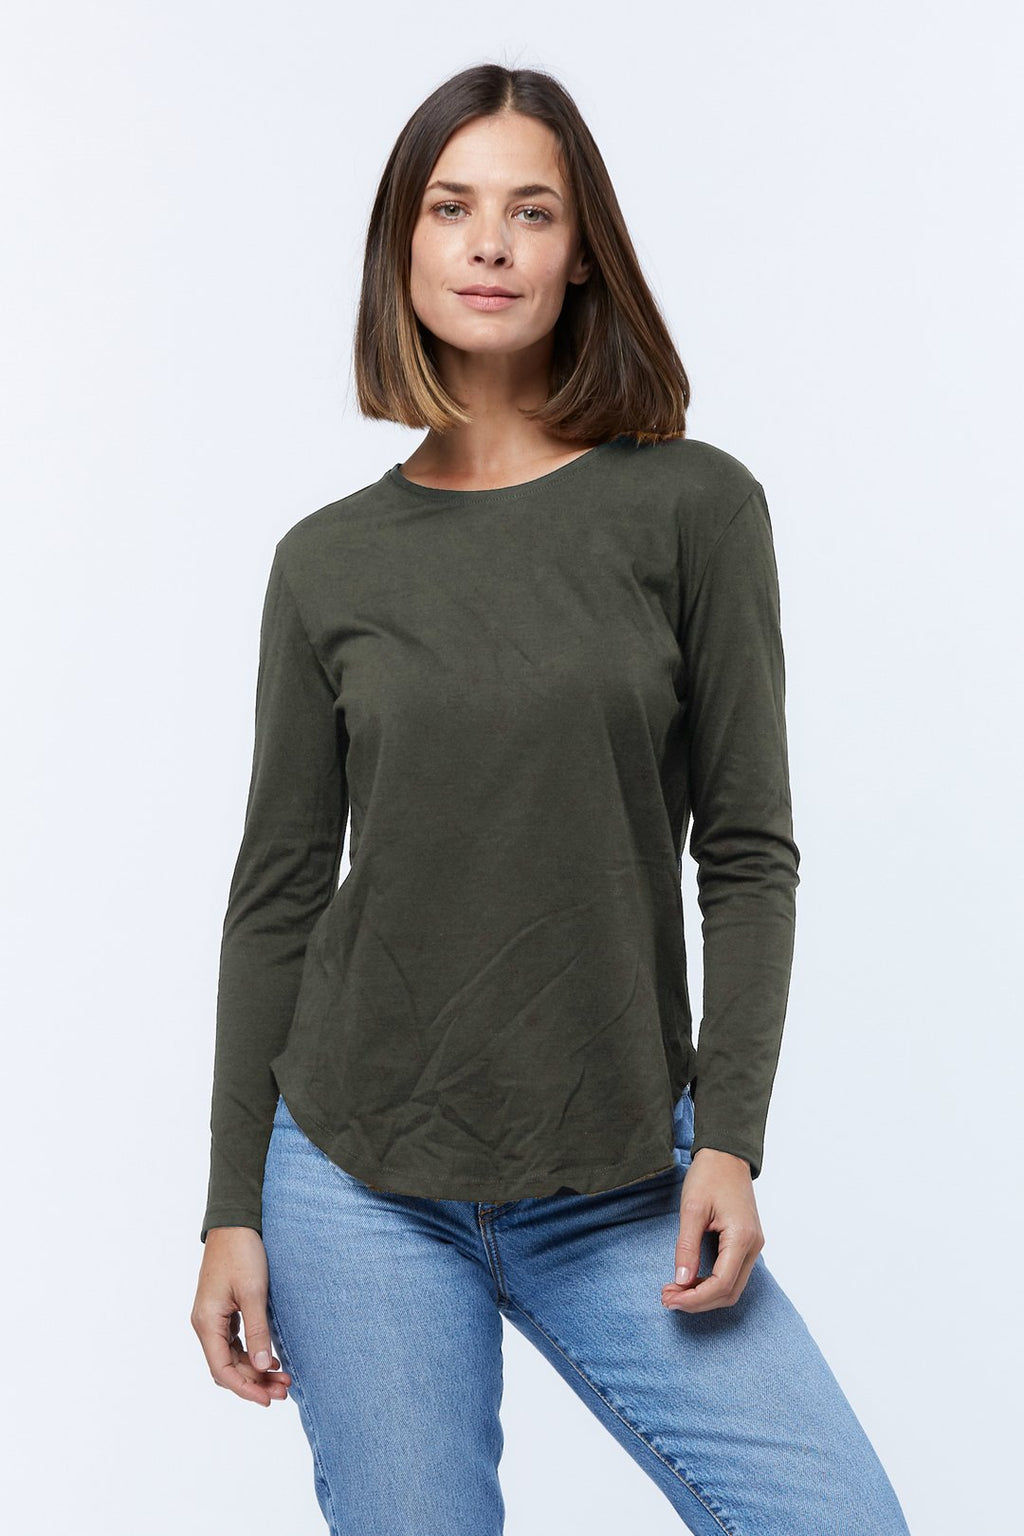 casa amuk pima cotton long sleeve tee olive green front